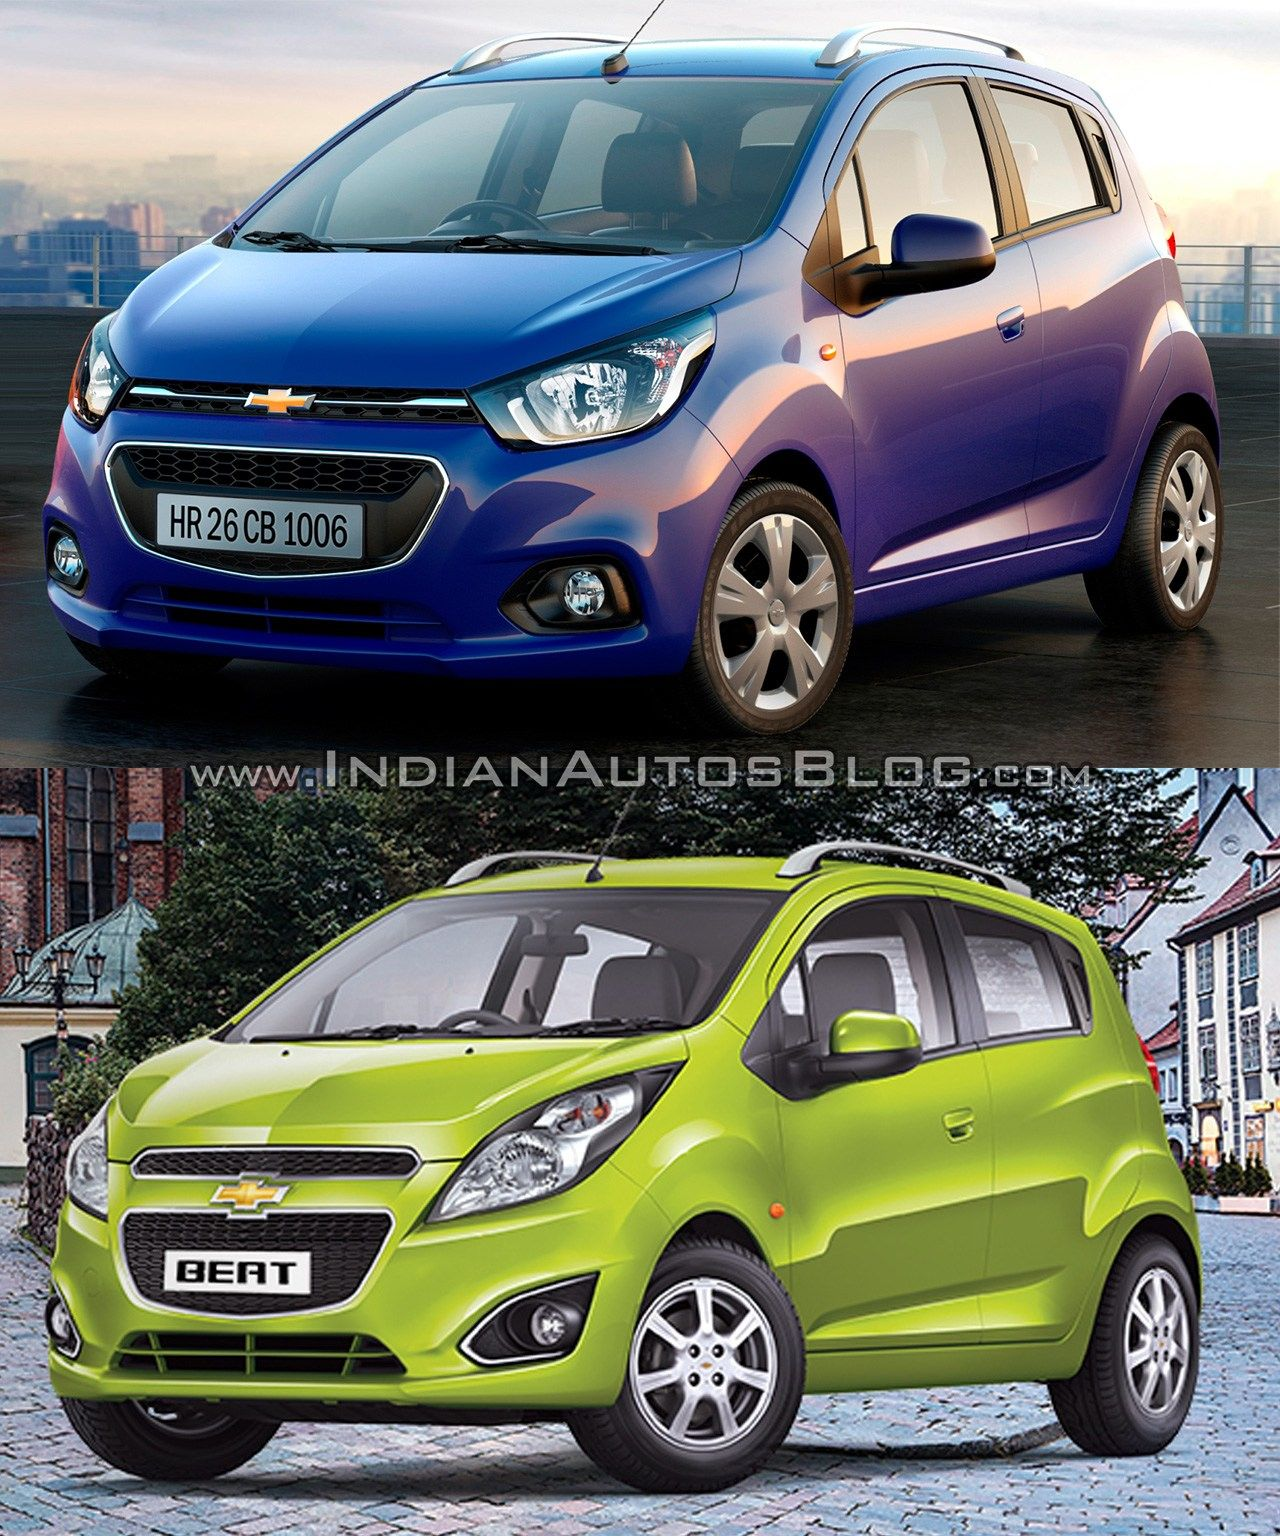 Next Gen Chevrolet Beat Vs Current Chevrolet Beat Old Vs New In 2020 Chevrolet Chevrolet Captiva Chevrolet Volt